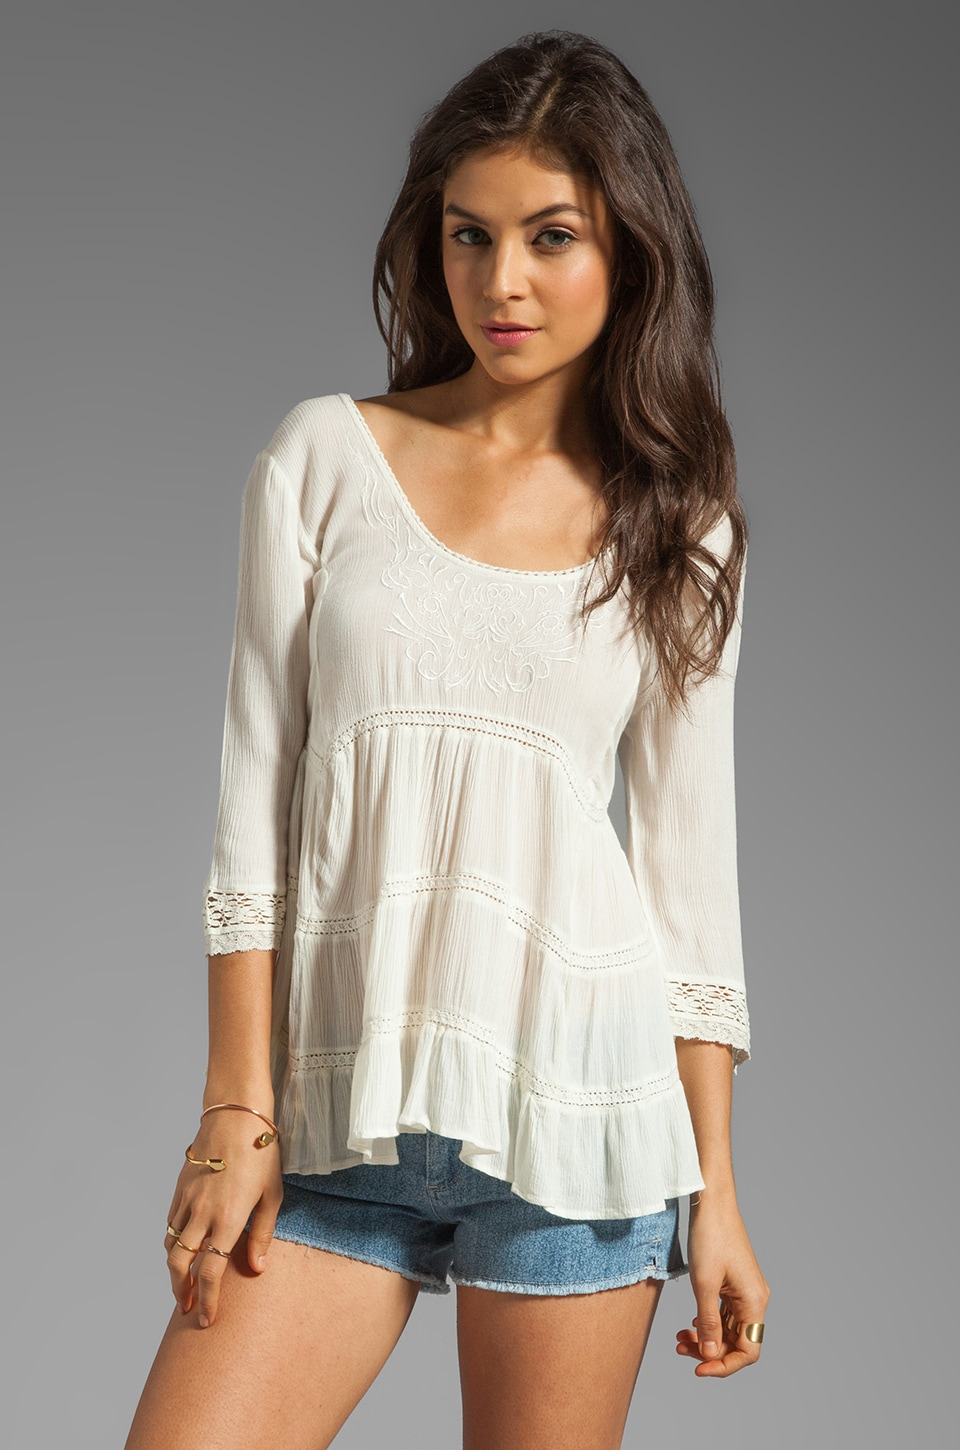 Free People Novella Top in Ivory